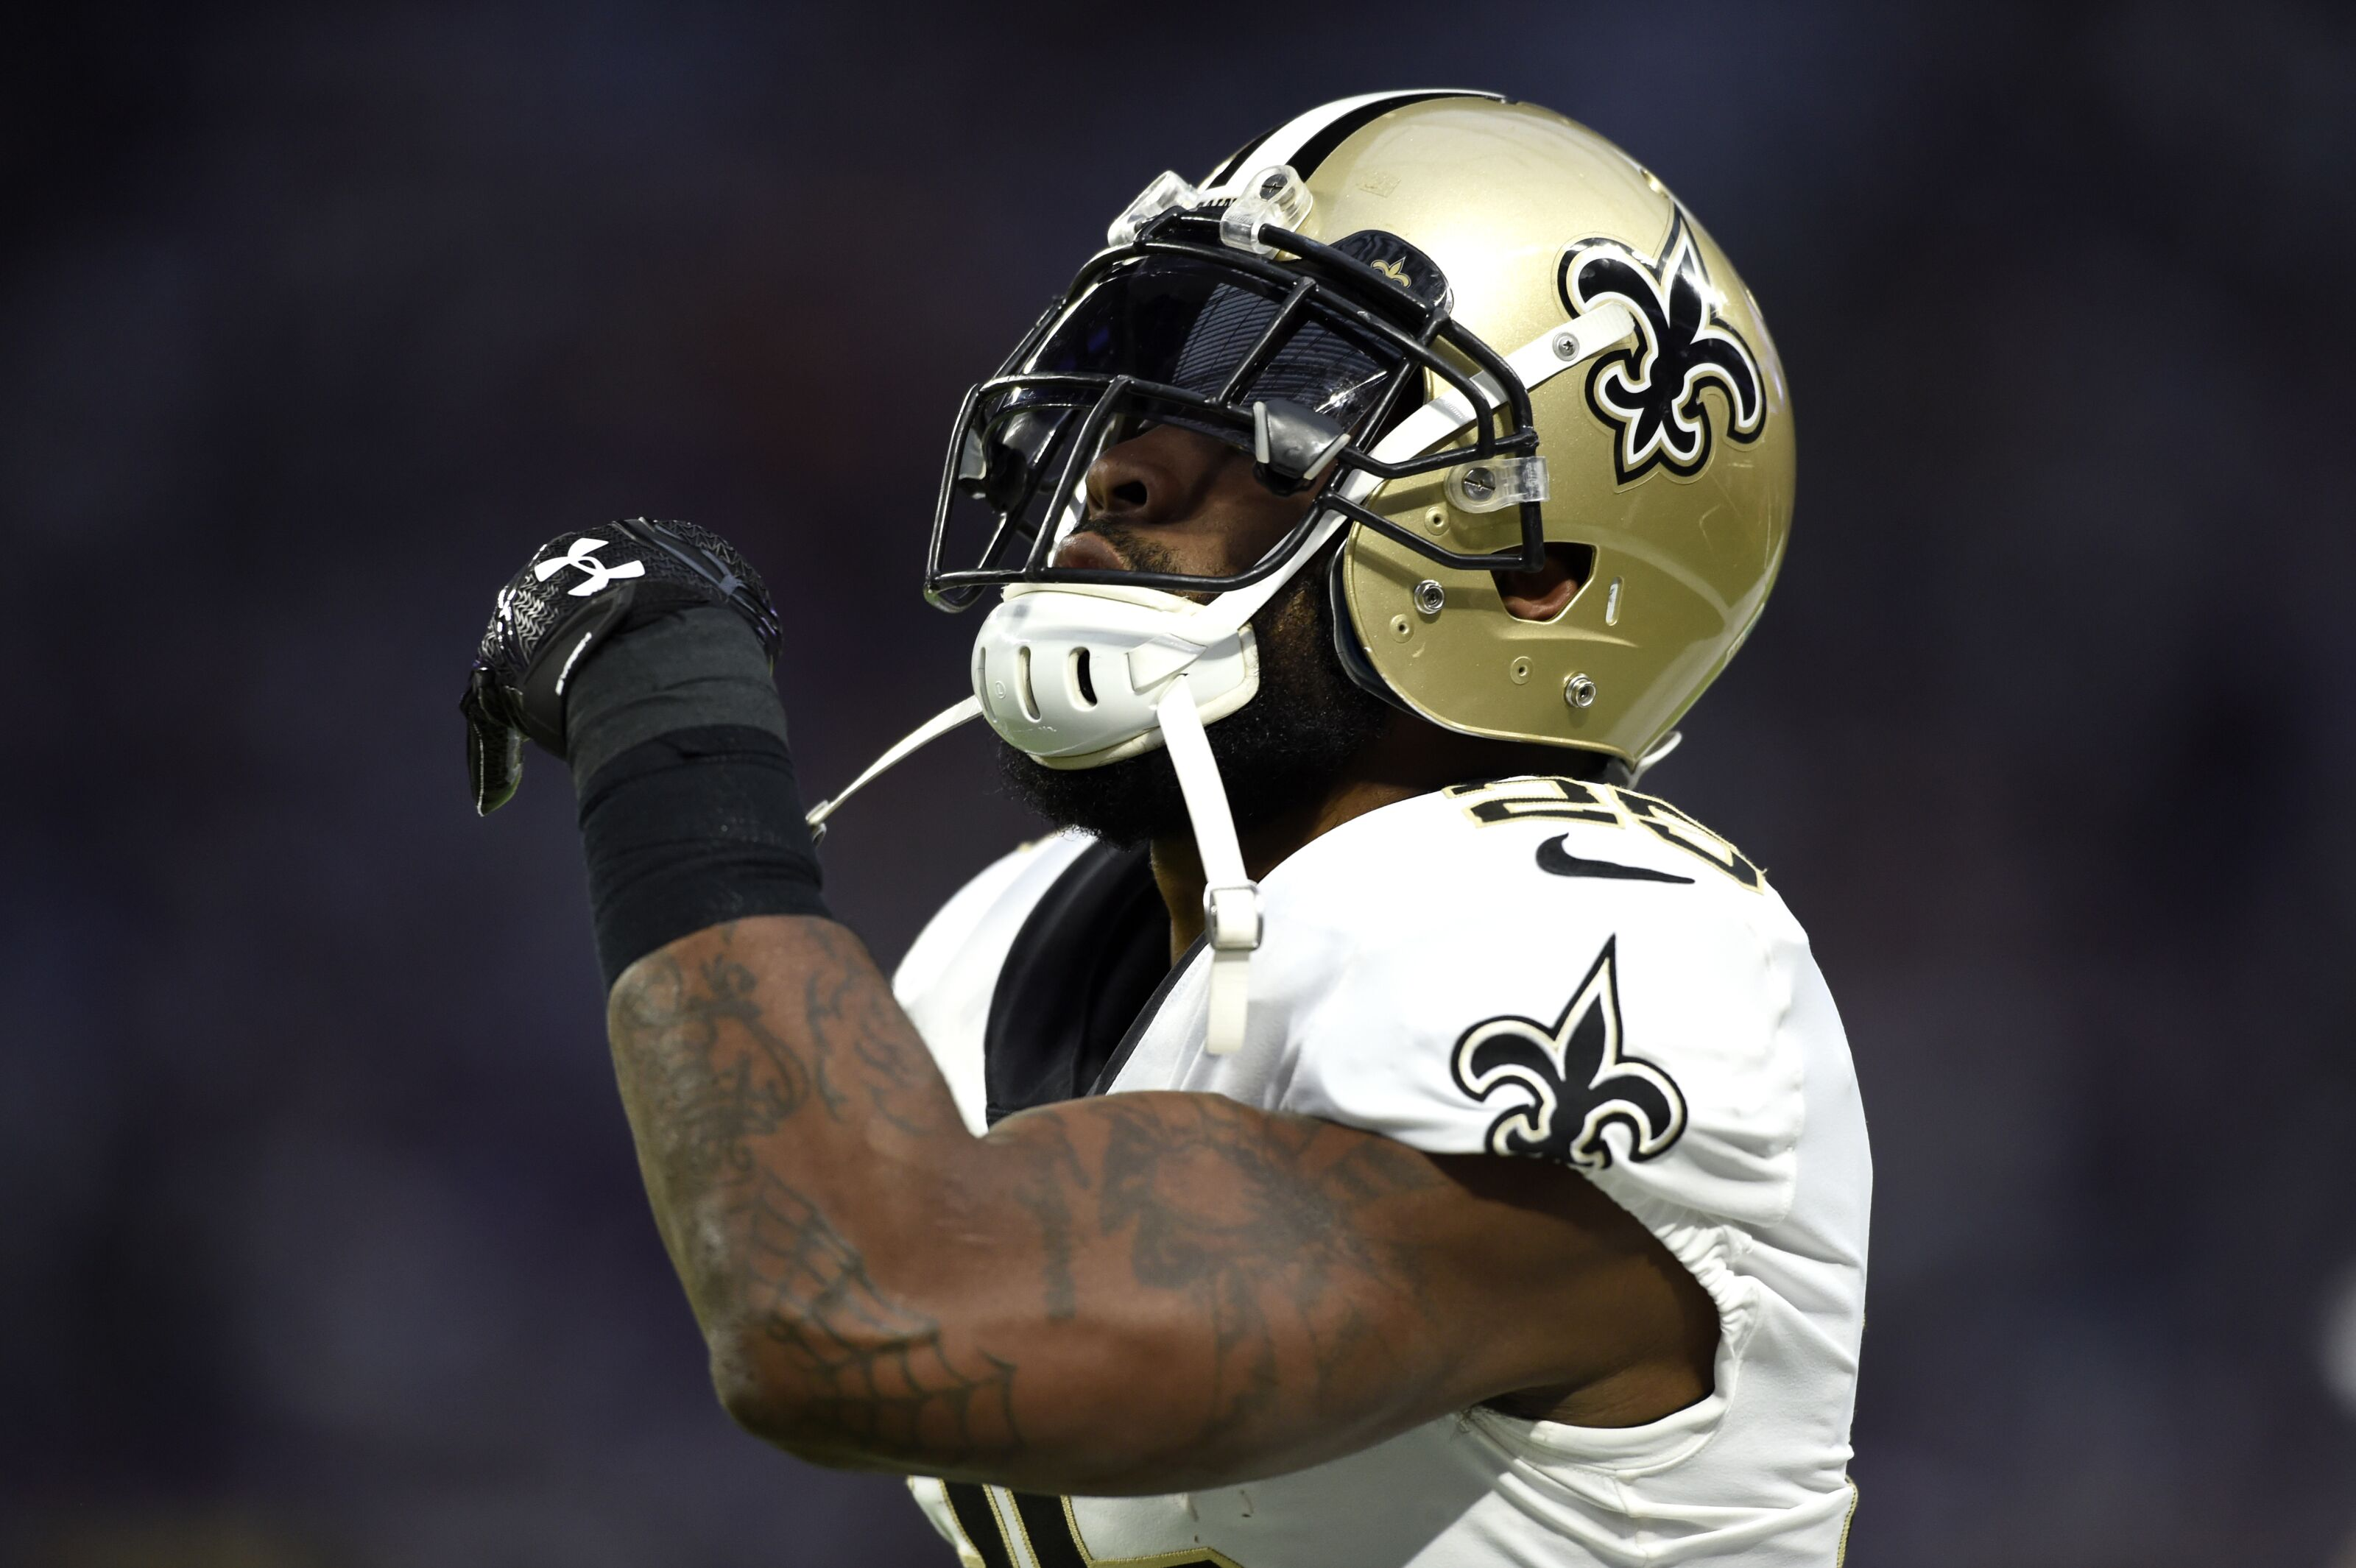 a62e1e776e0 New Orleans Saints  Time for an update on the uniforms